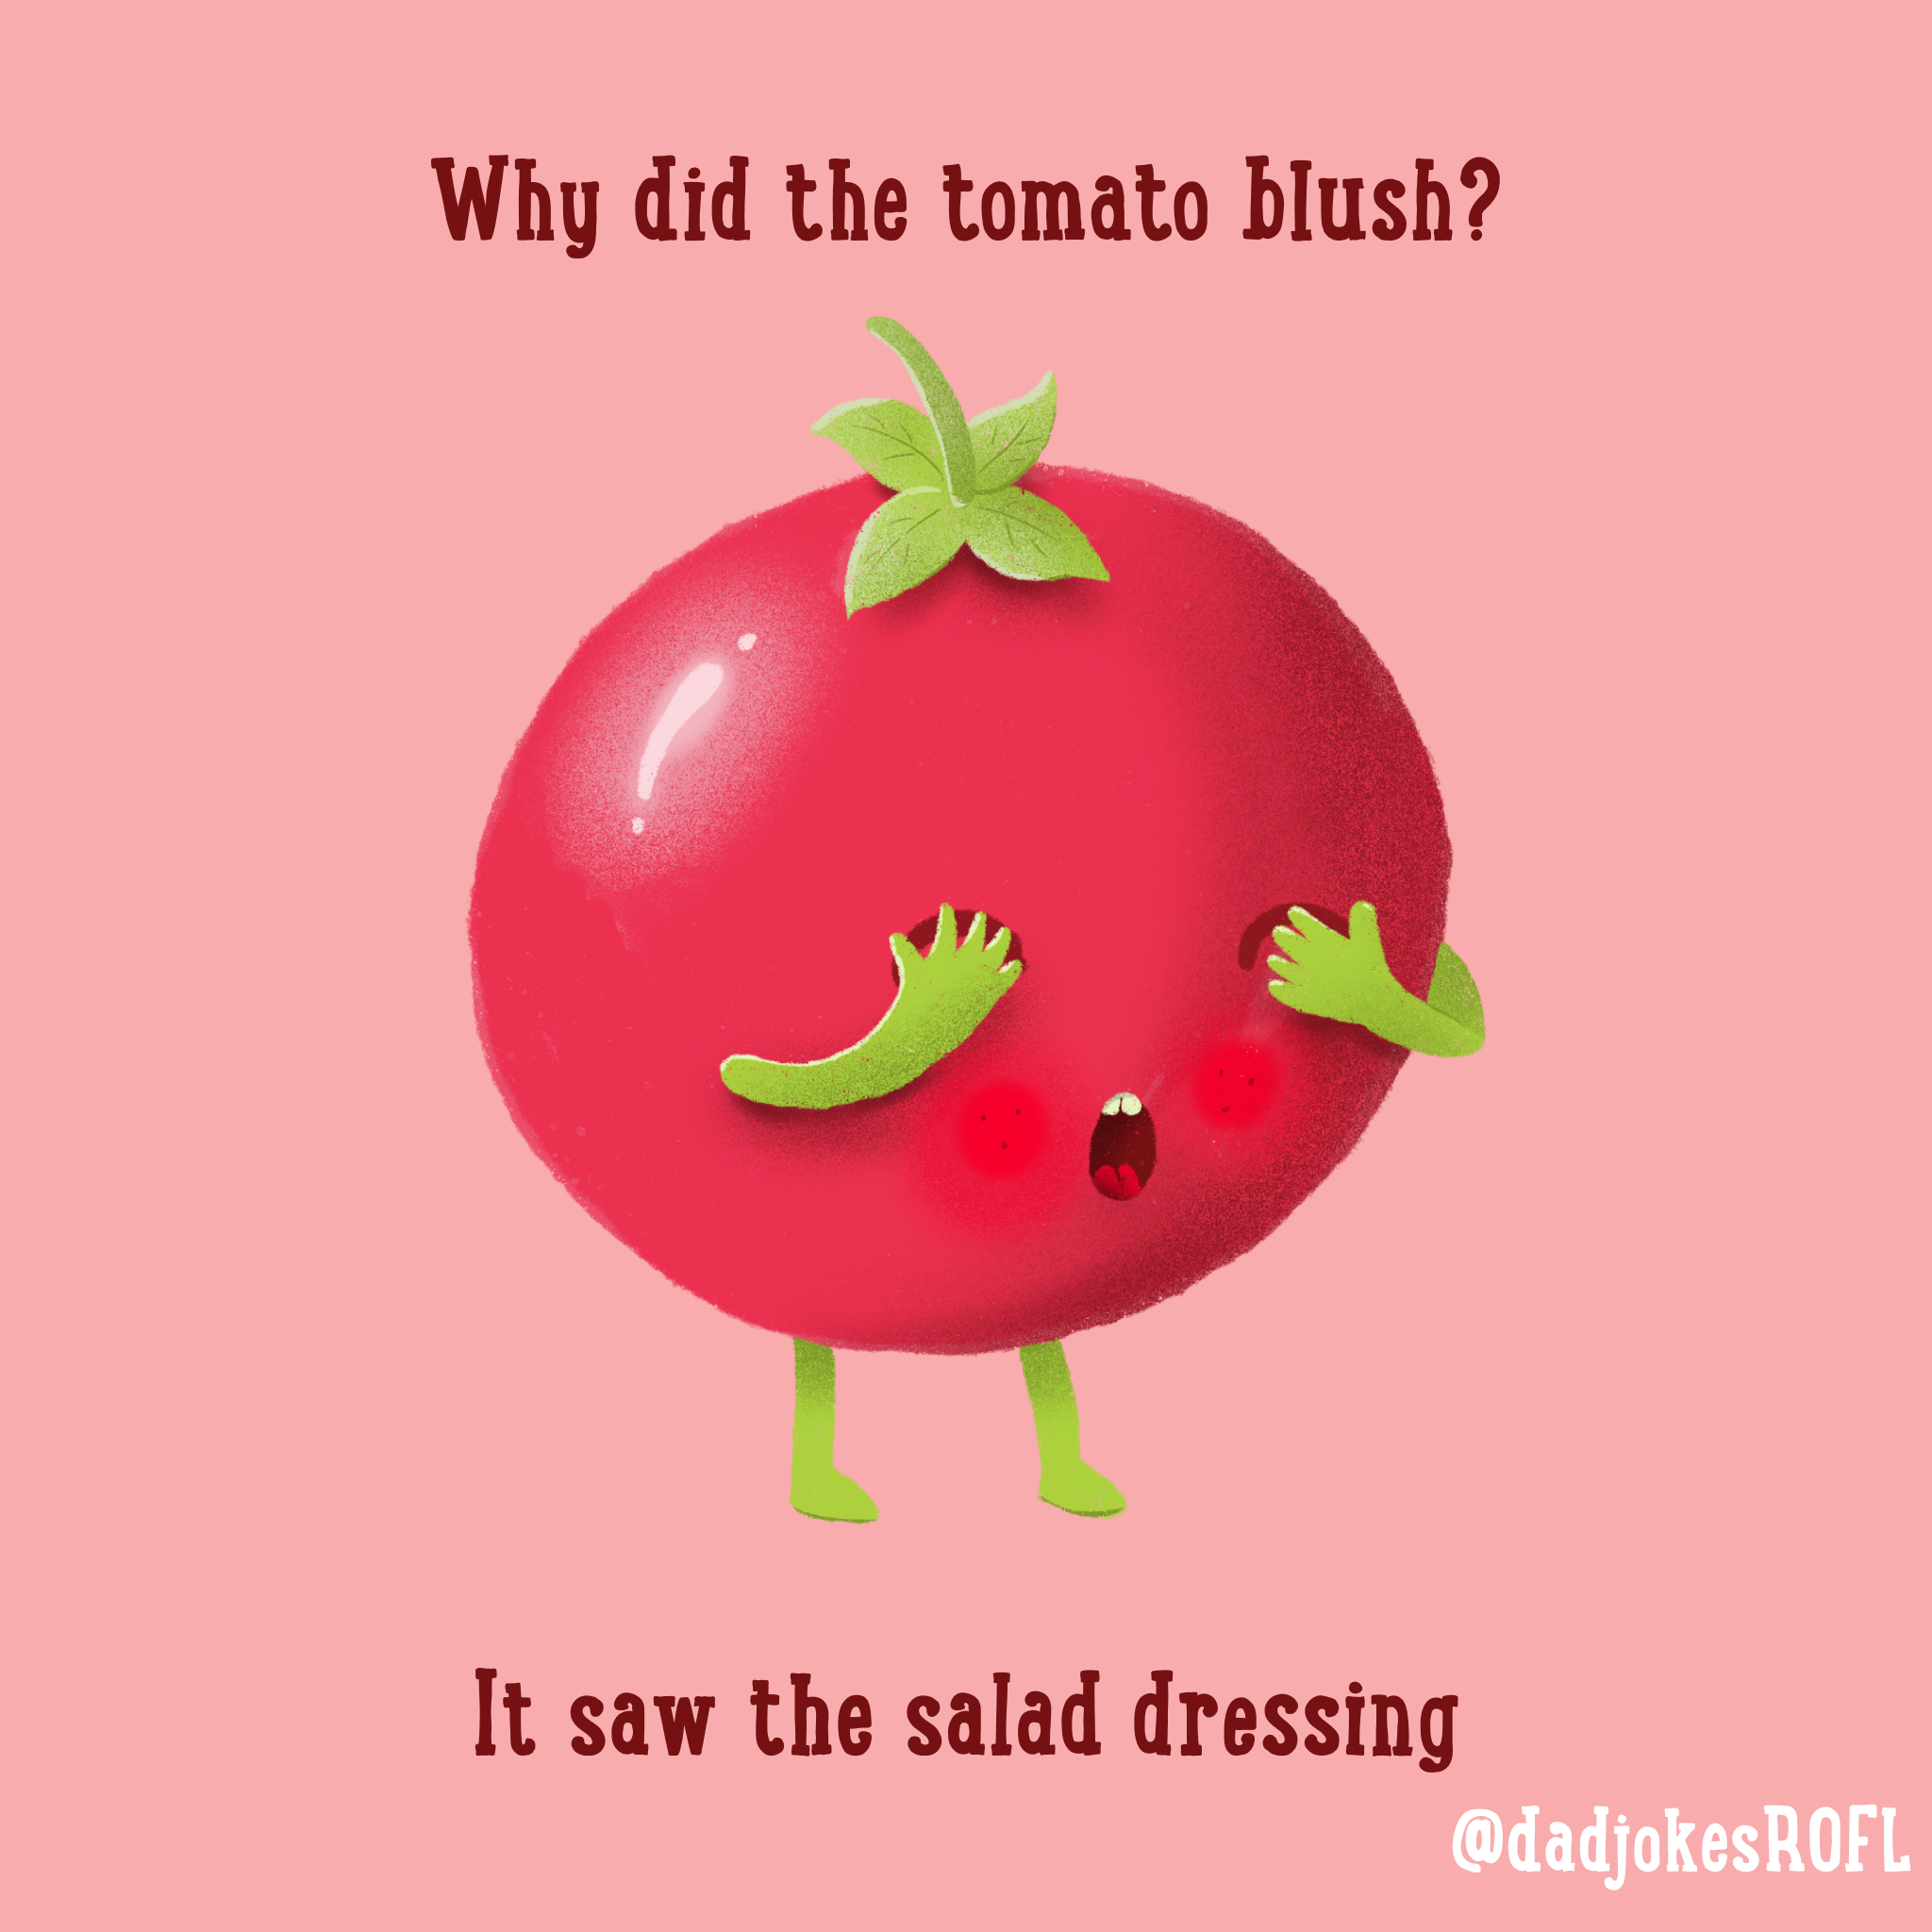 Why did the tomato blush? It saw the salad dressing